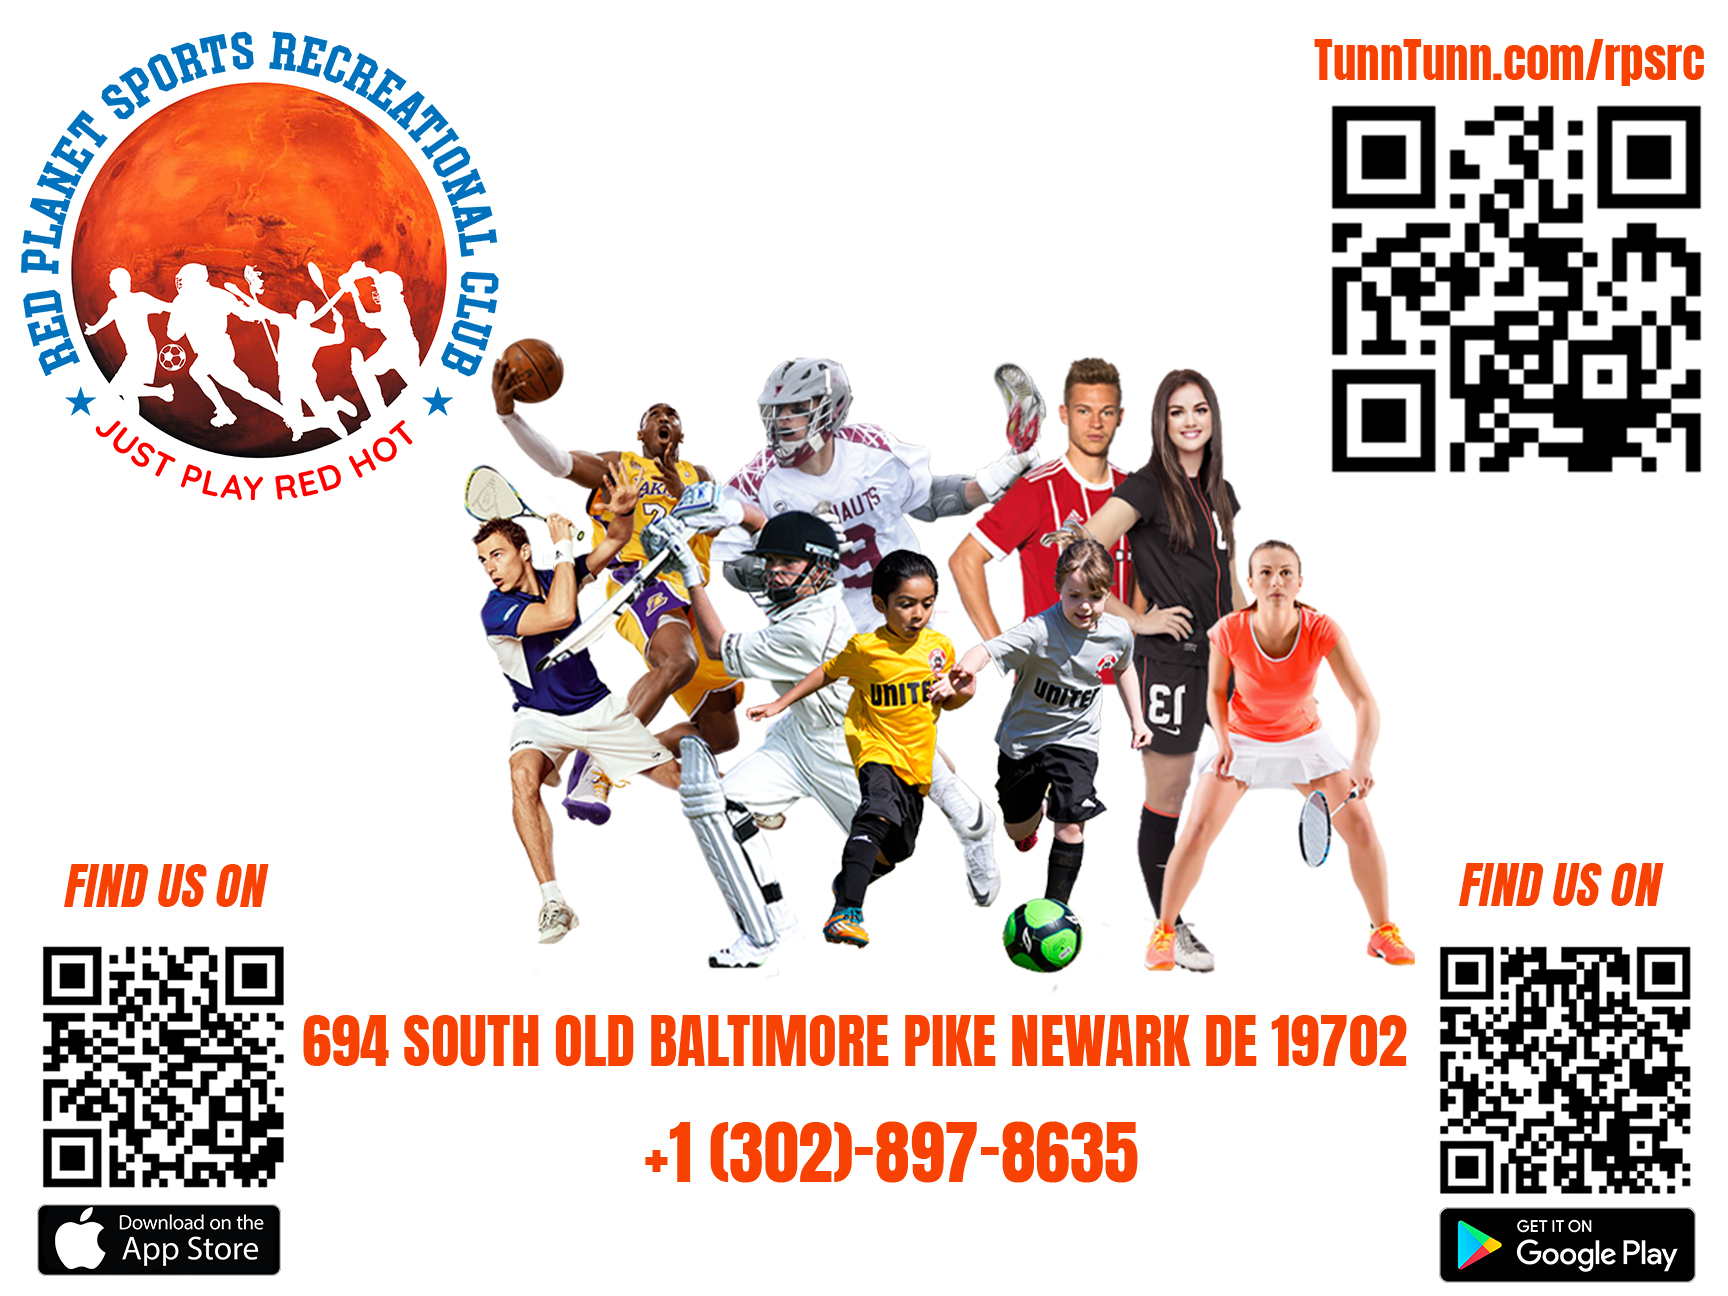 Red Planet Soccer League Tryouts